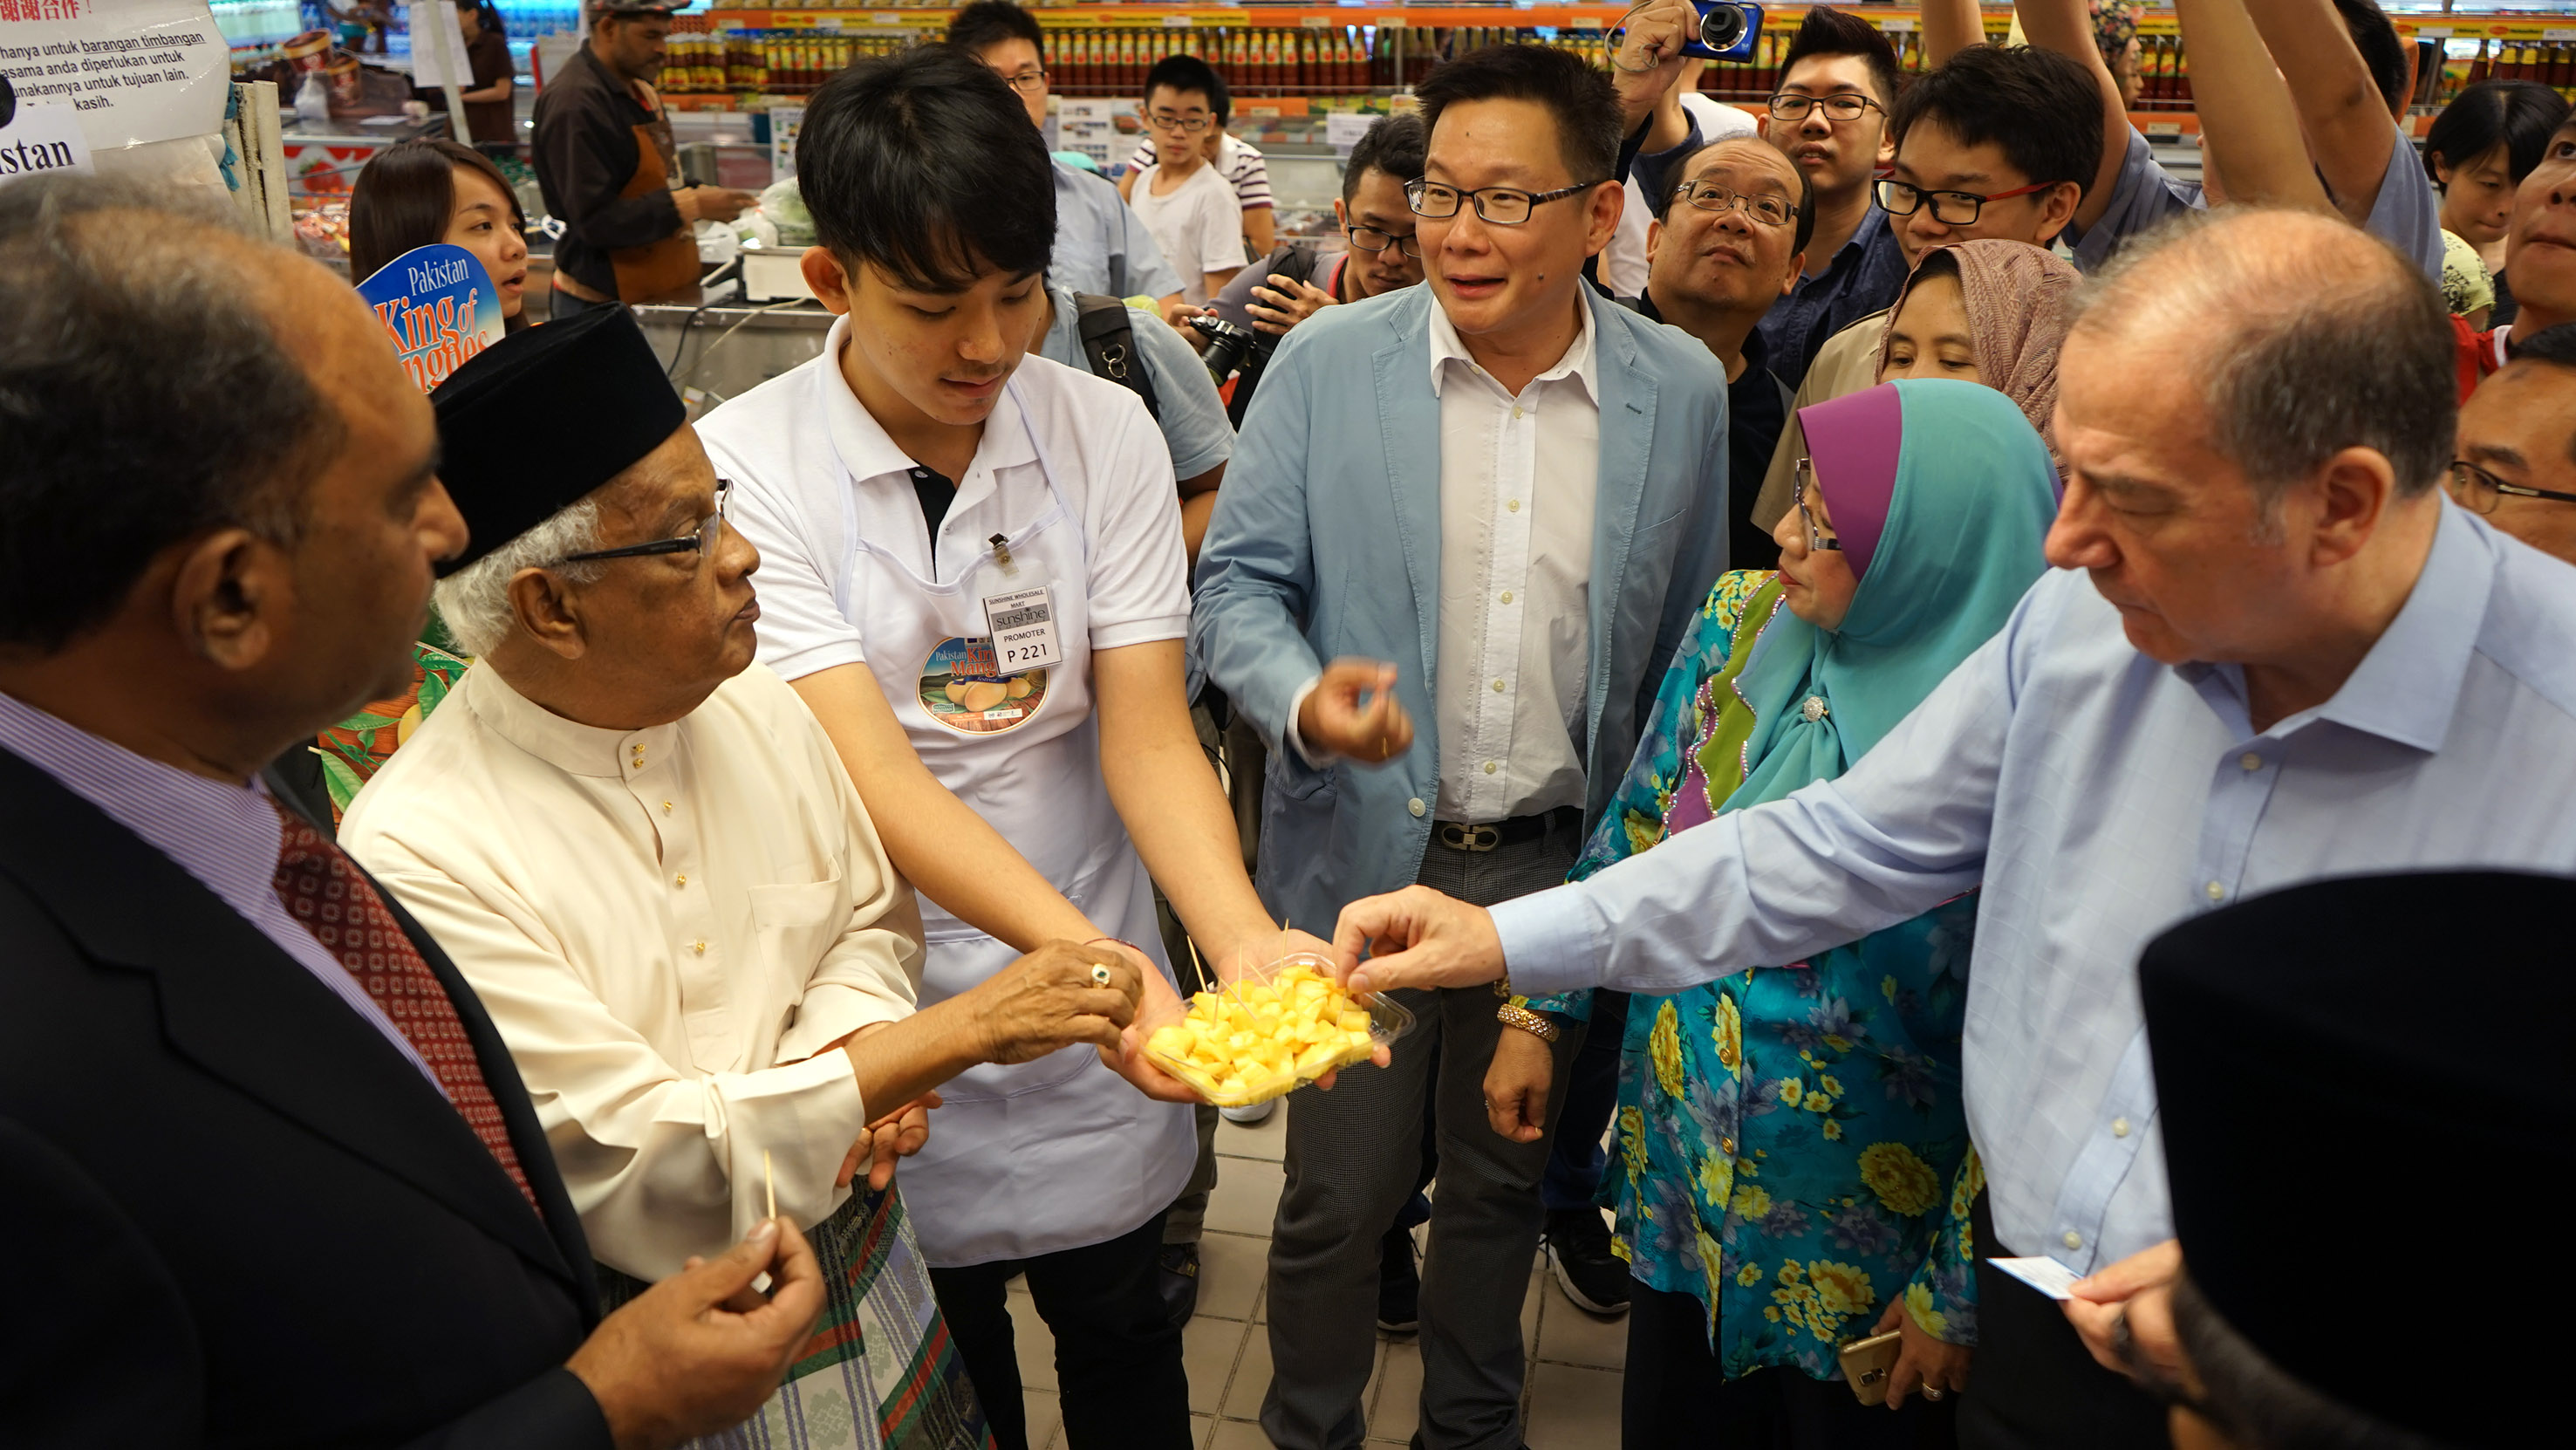 The guests of honour sampling Pakistan mangoes. (L-R) Syed Hassan Raza, Tan Sri Yusoff Latif, a promoter, Koay Swee Aik, Datin Seri Hamidah, Robert Hawkin.